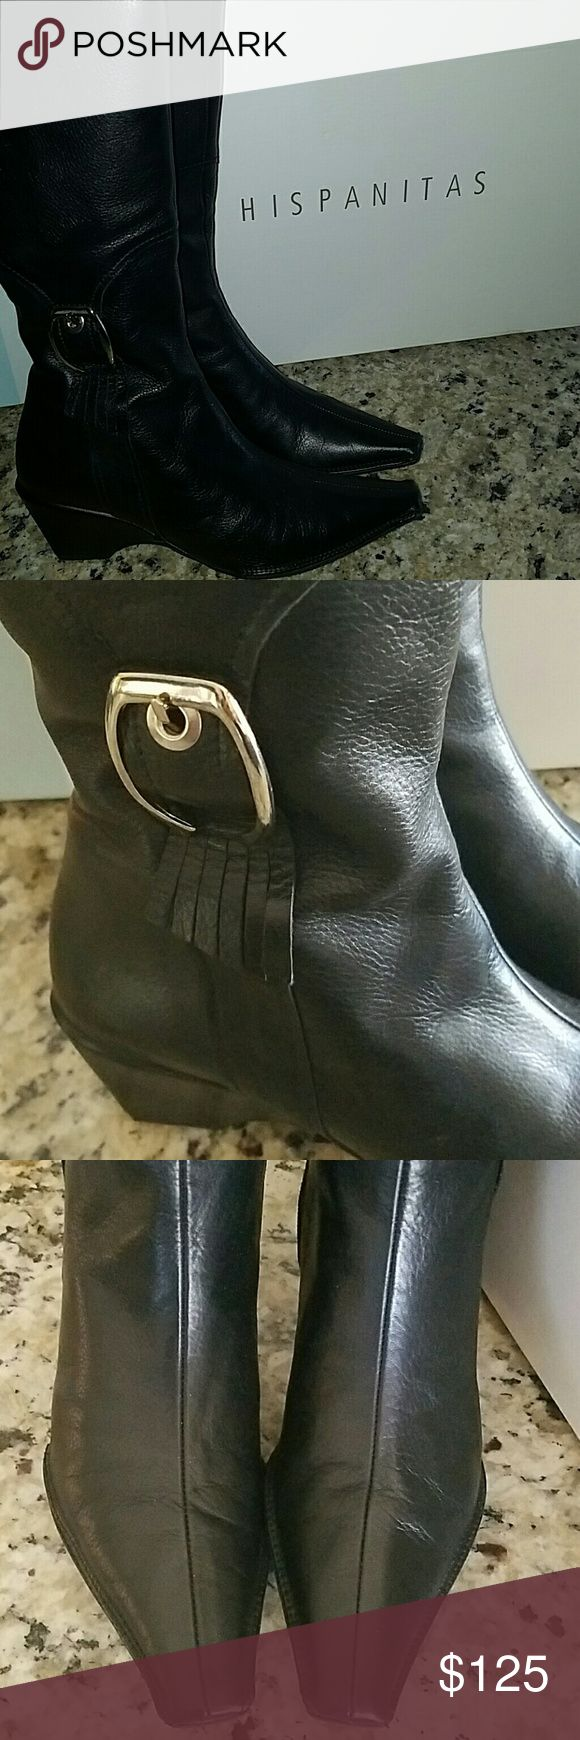 HISPANITAS tall black boot Excellent condition, like new, Euro 37,  US 7, these are narrow size boots, side zip, wedge heel, 17 inches tall, soft all leather. Beautiful Boot. HISPANITAS  Shoes Heeled Boots